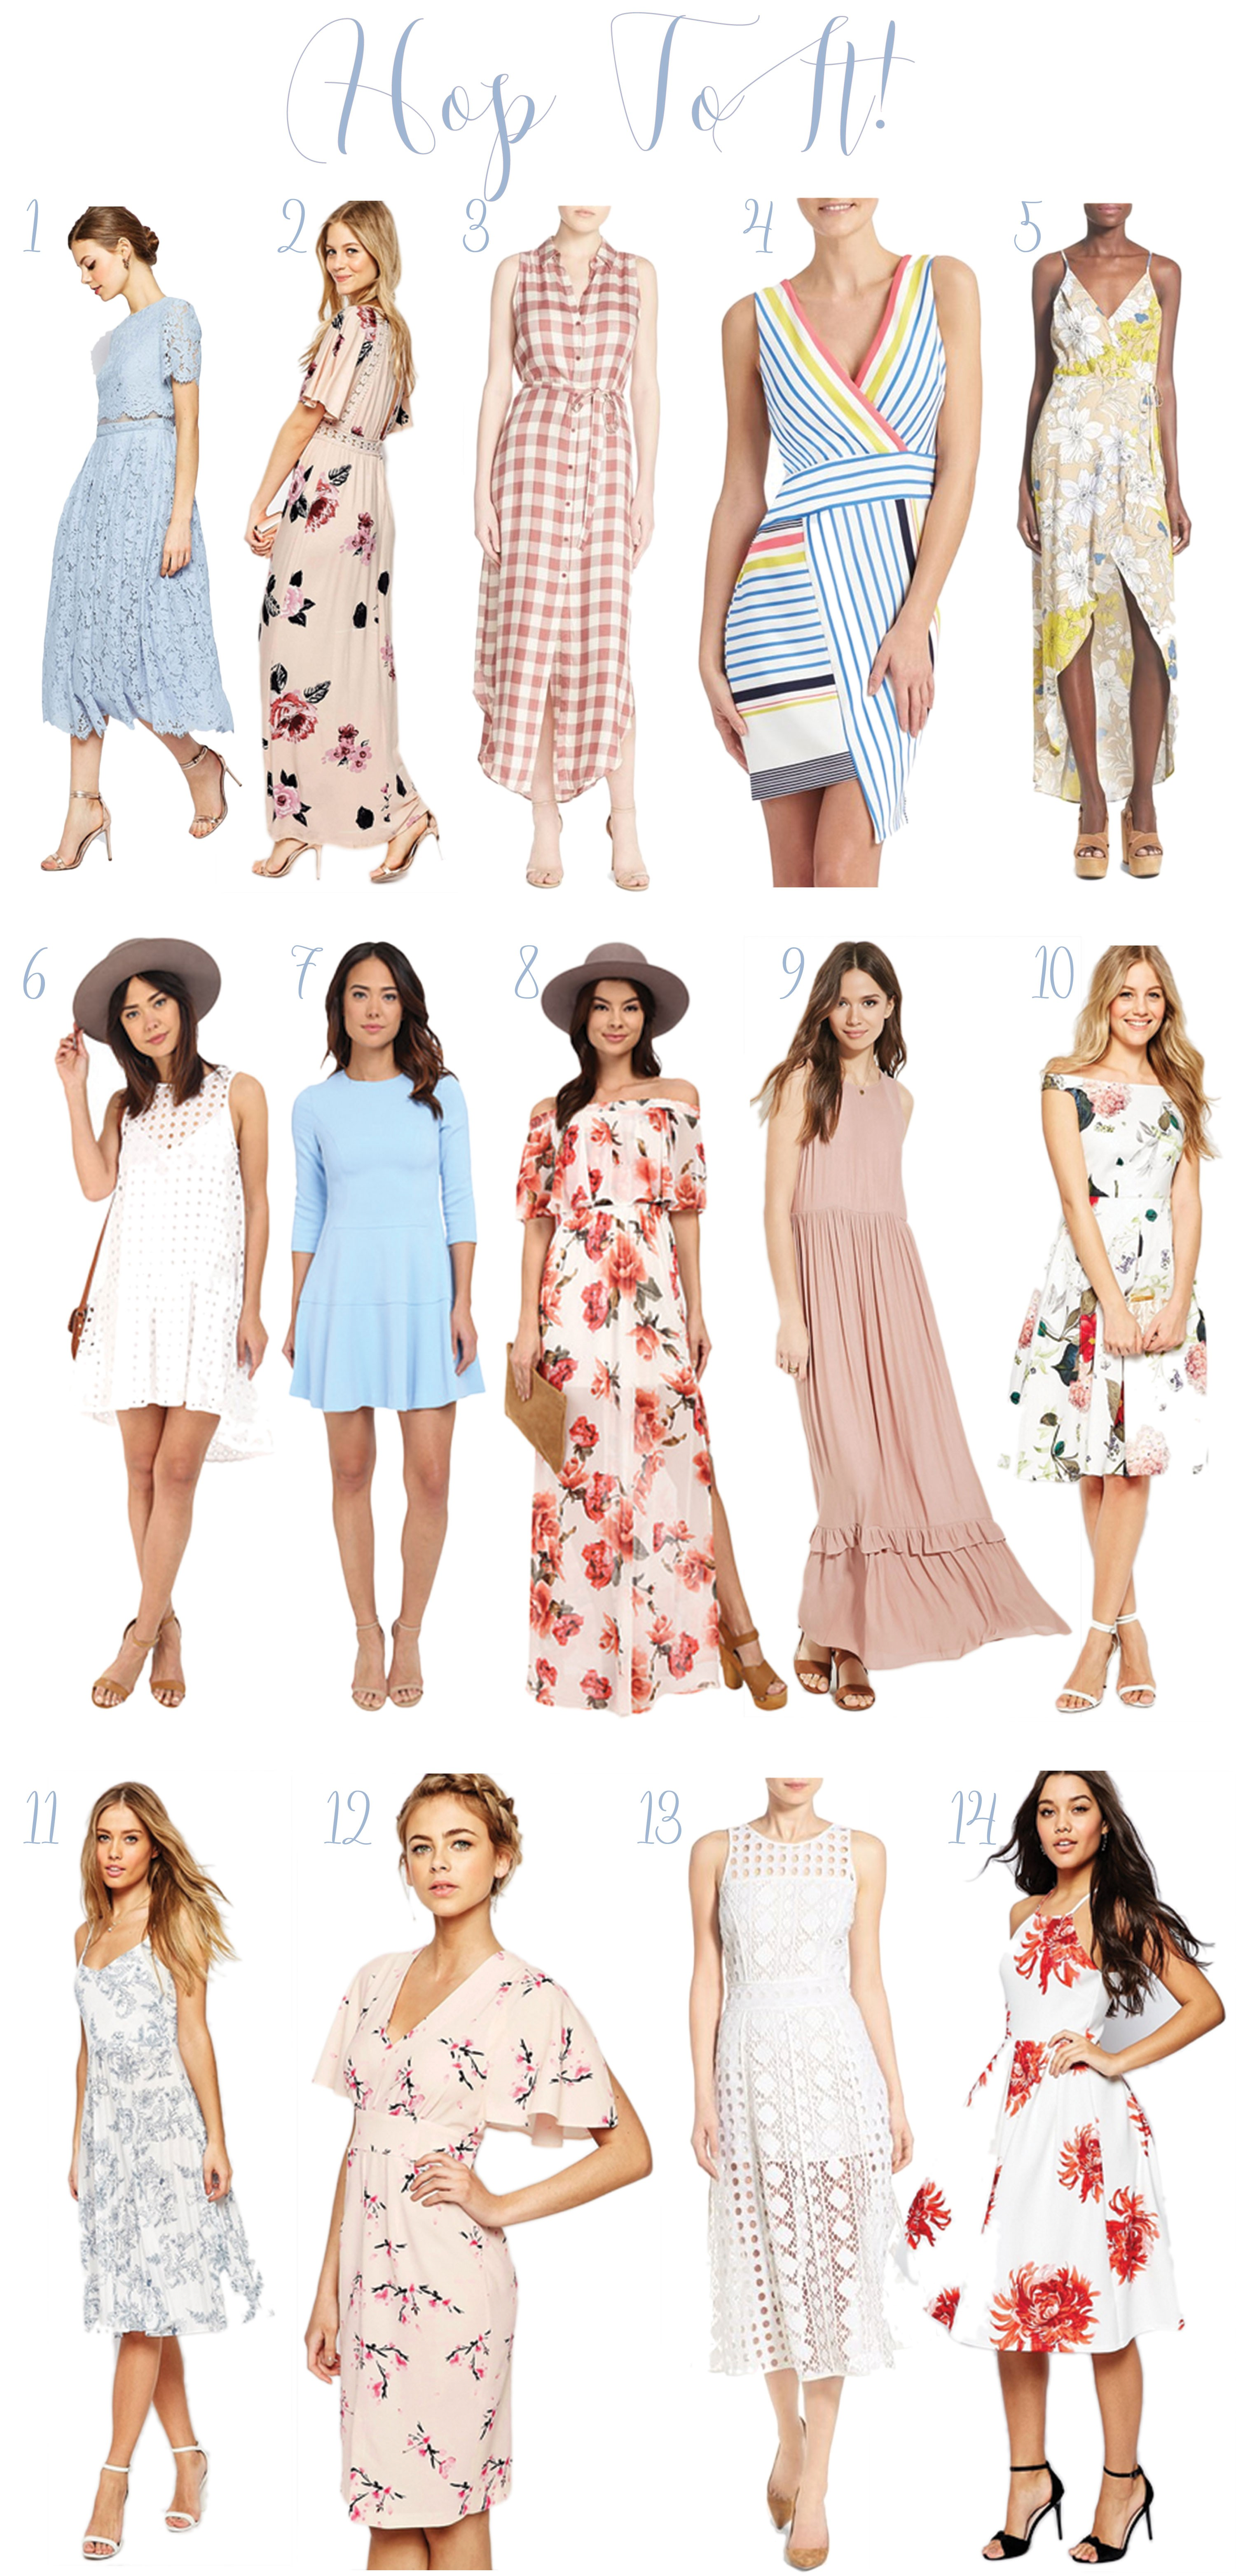 d61c7d5d9 If you aren't ready for Easter, I've got you covered! Here are 14 of my  favorite dresses, most under $150 (and some with free shipping)! Hop to it  and order ...